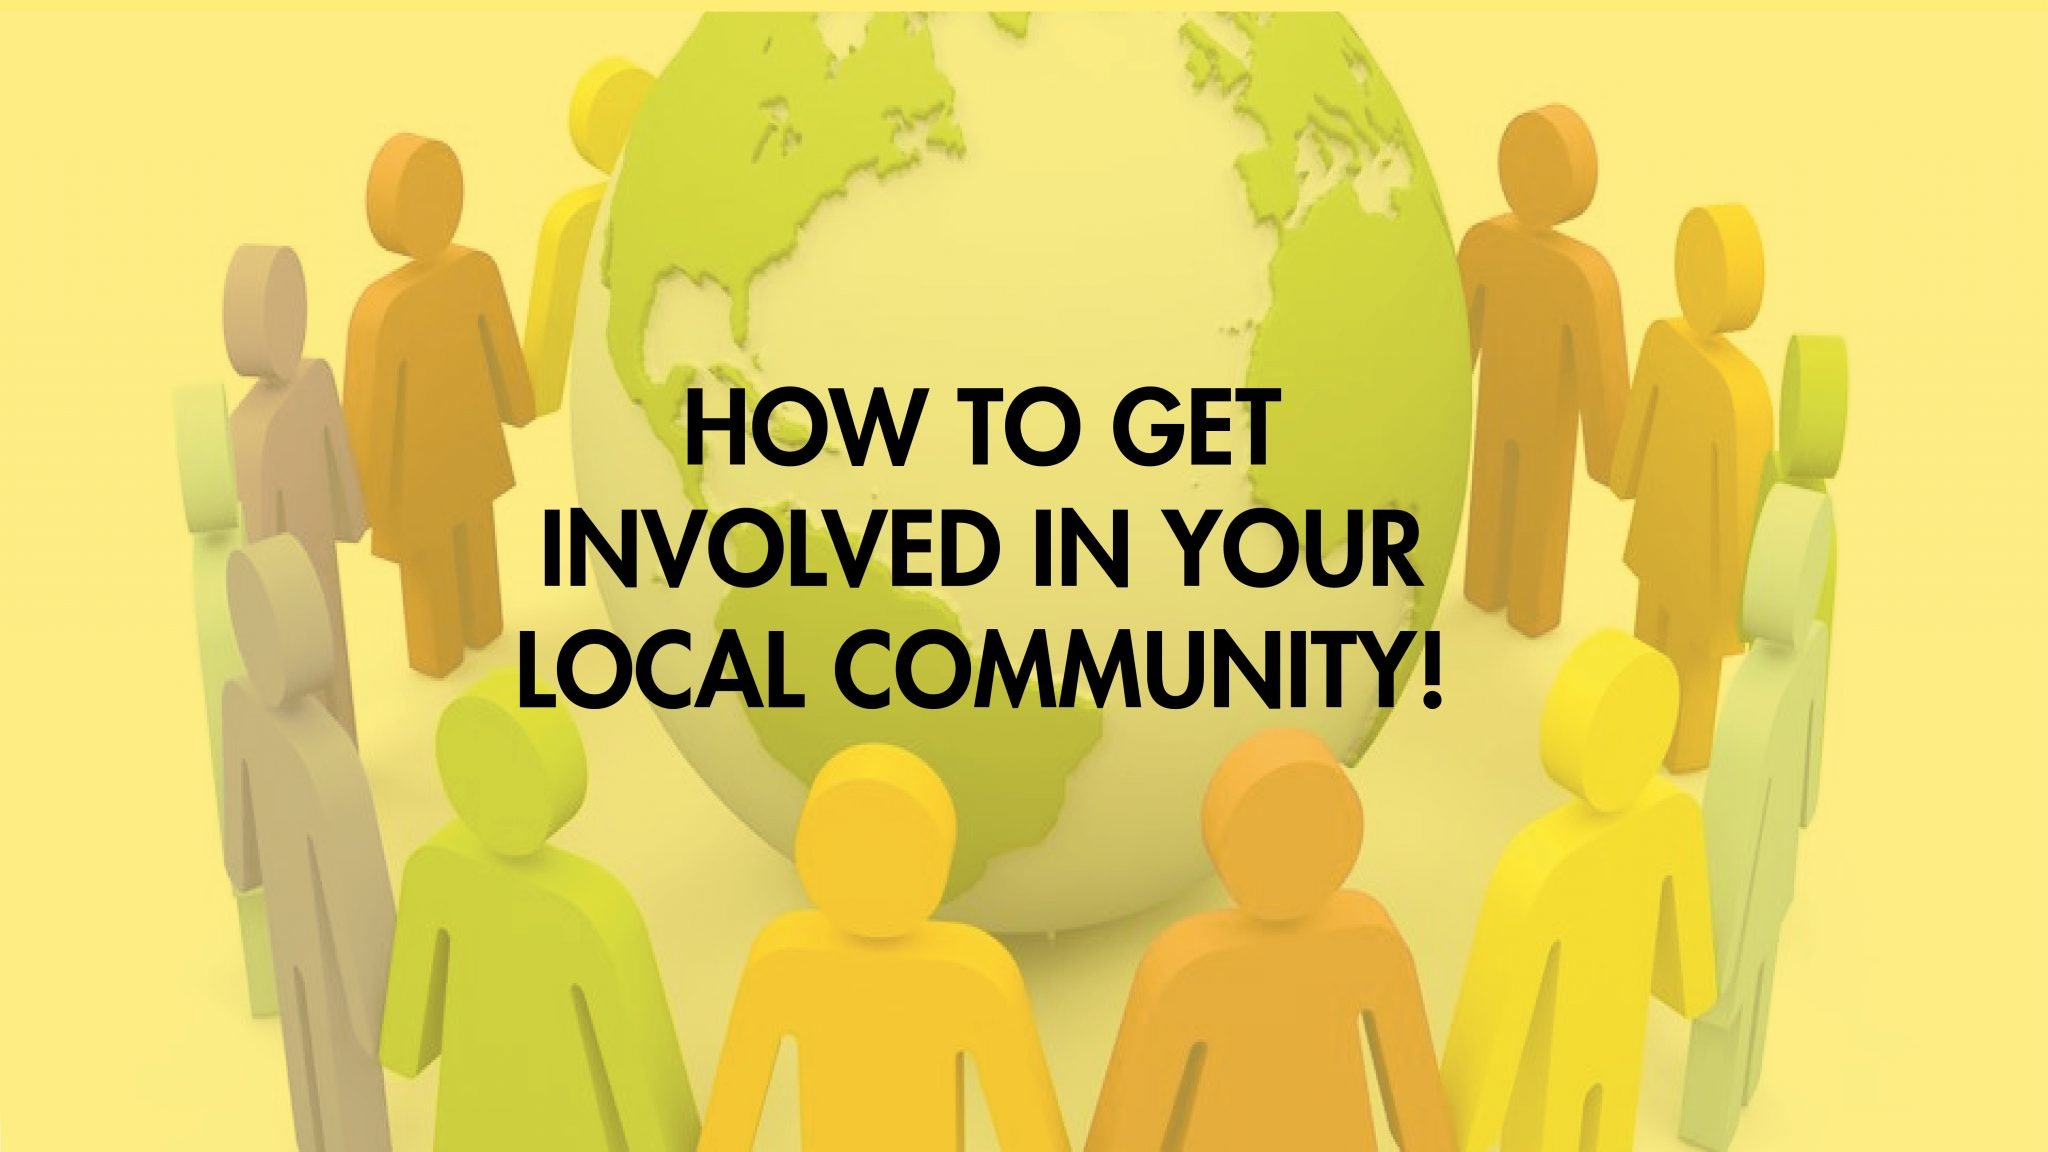 How to get involved in your local community